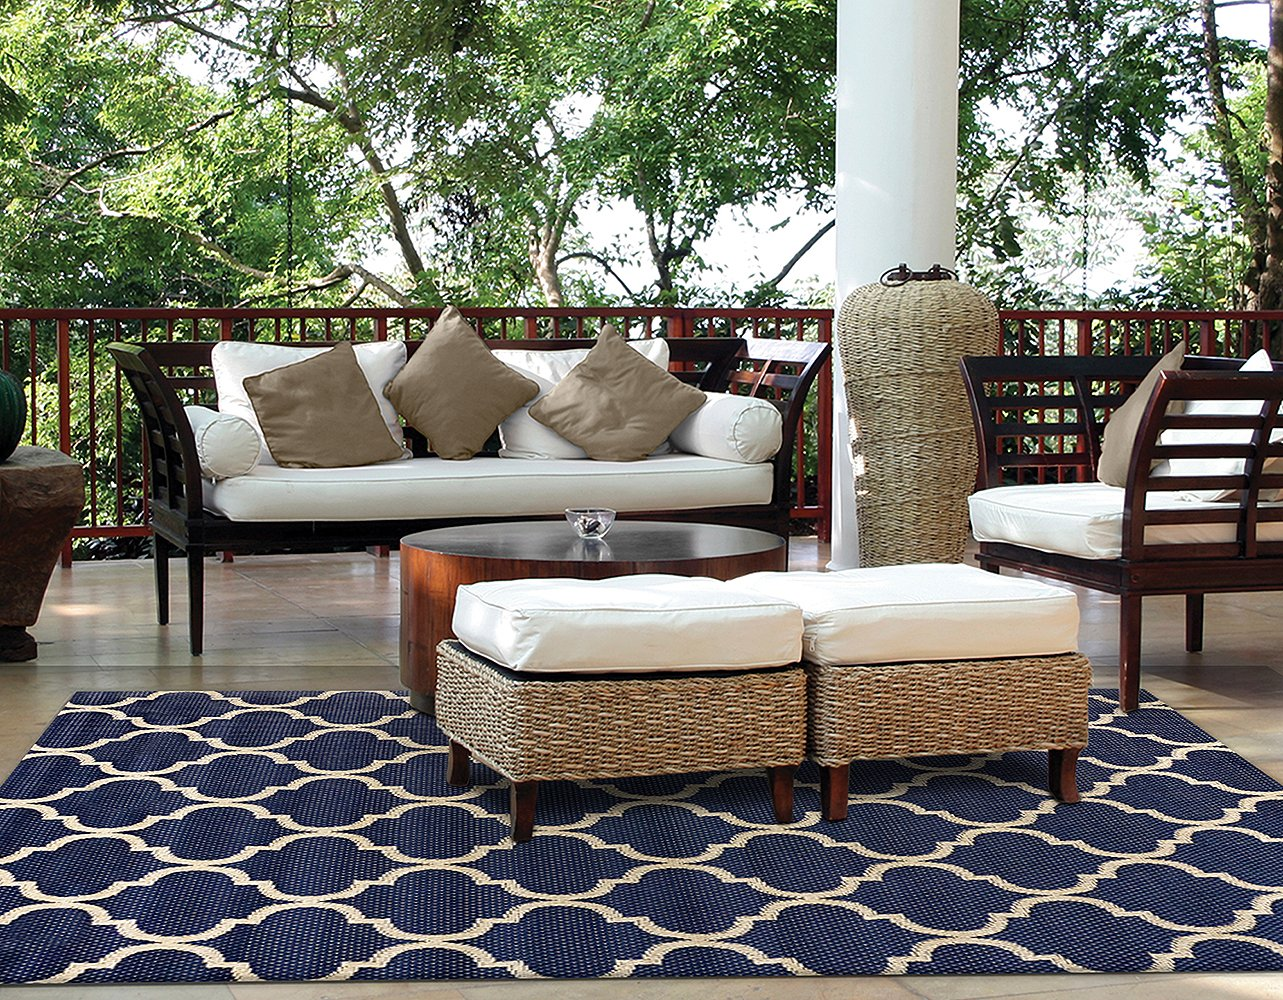 Brown Jordan Prime Label Outdoor Furniture Rug 5x7 Seneca Collection Blue Sisal Woven Modern Patio Rugs, Navy by Gertmenian